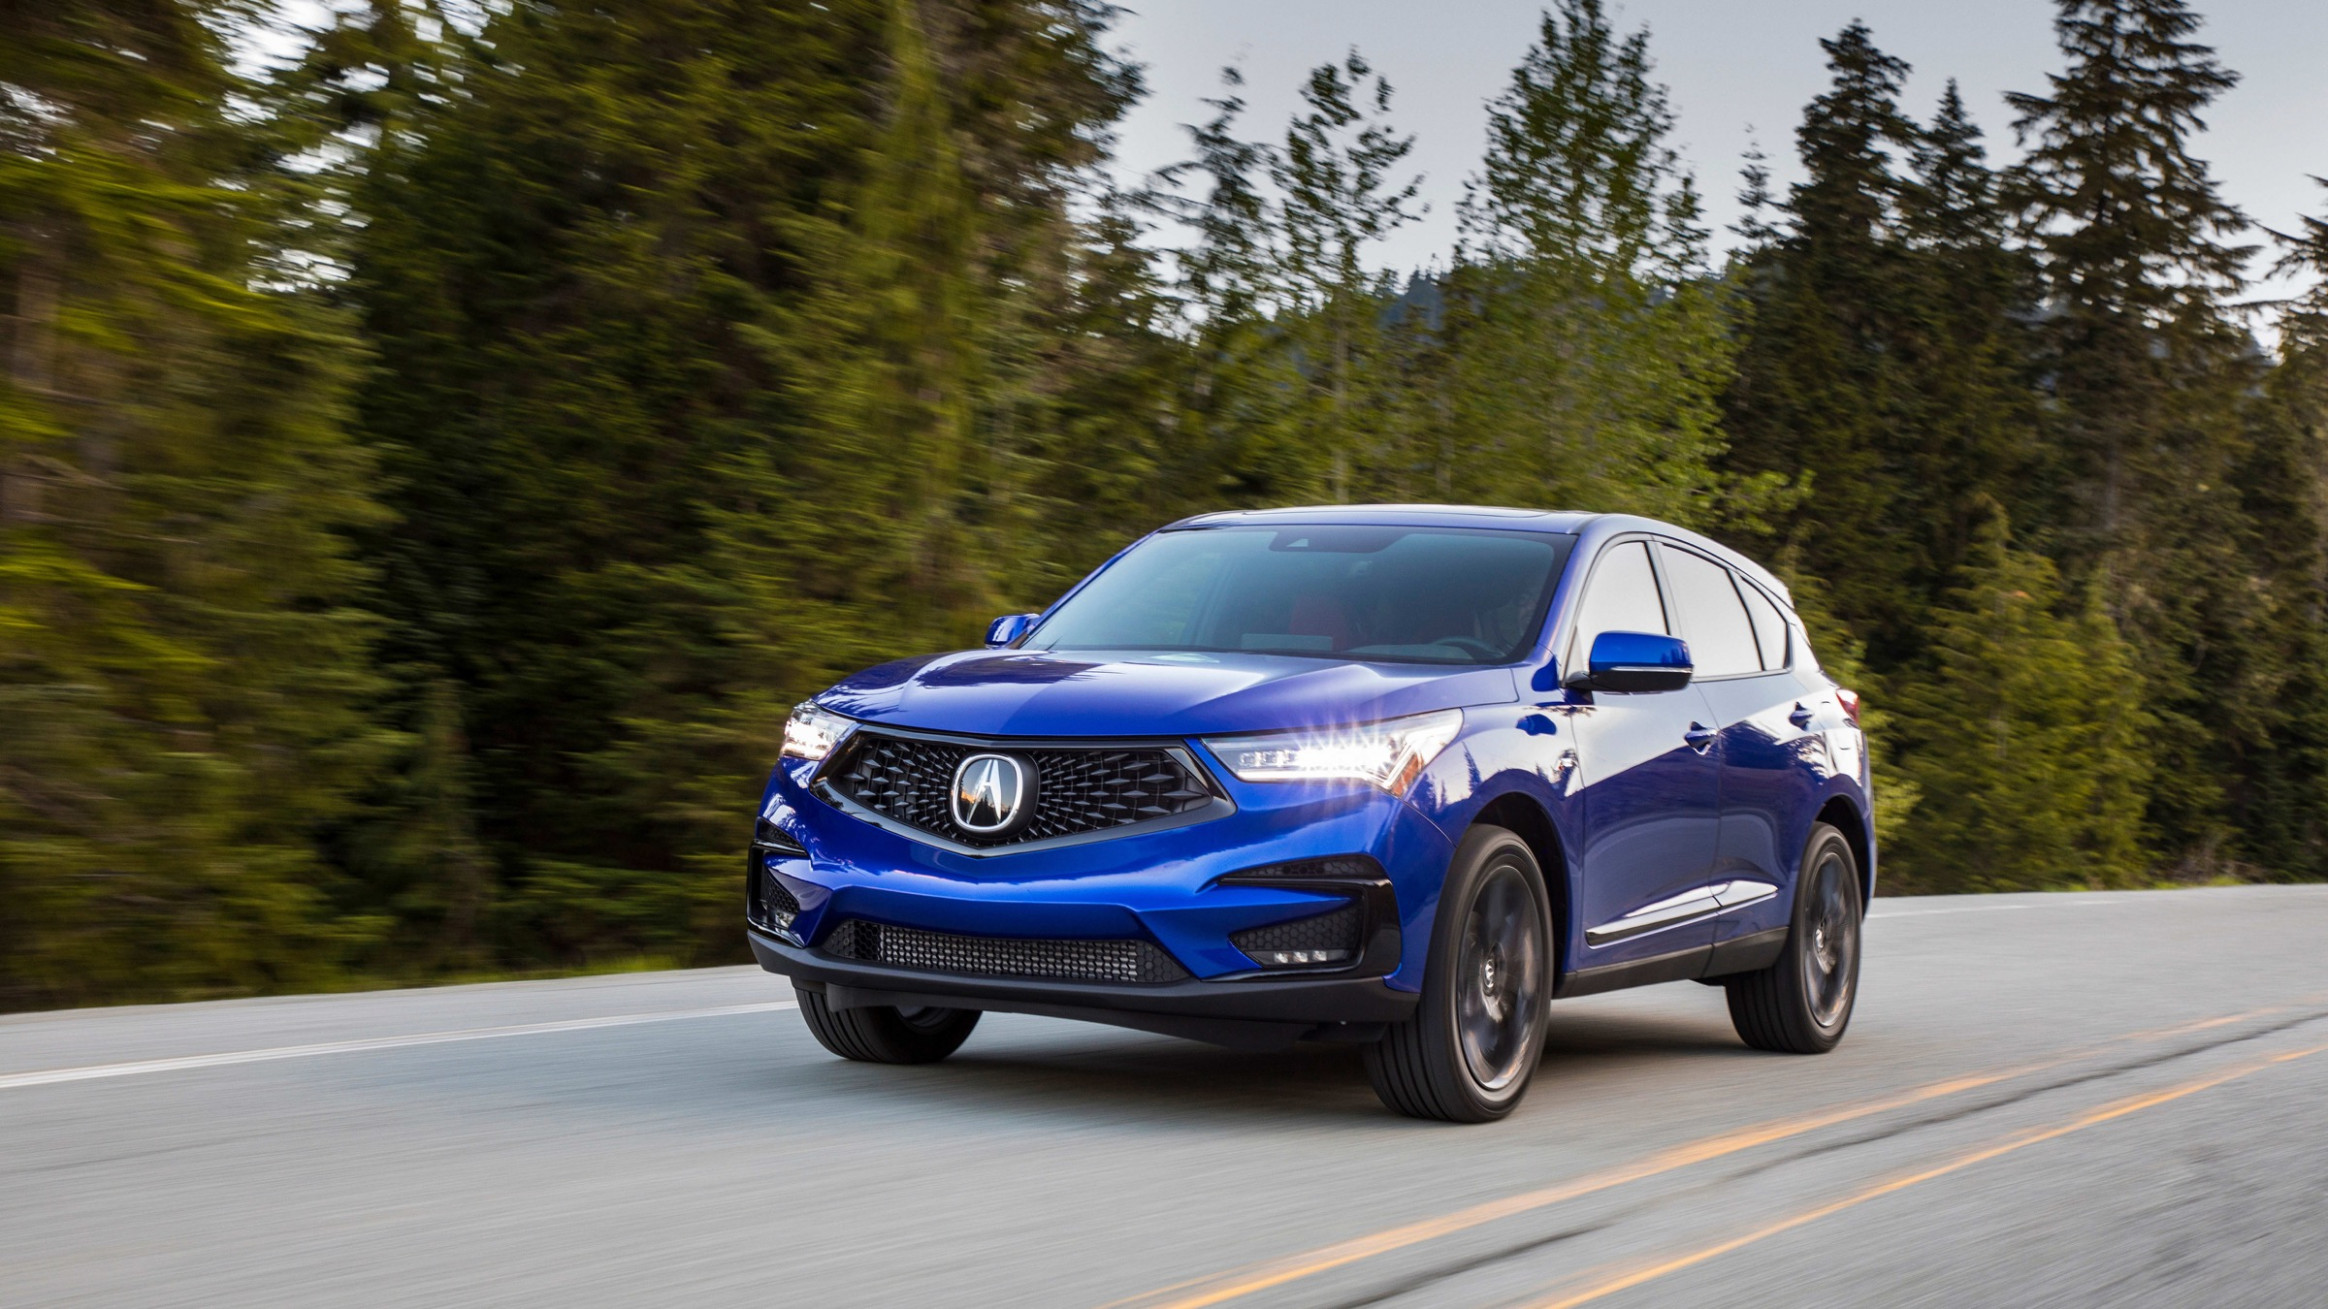 10 Acura RDX Review and Buying Guide | Specs, features, photos ...